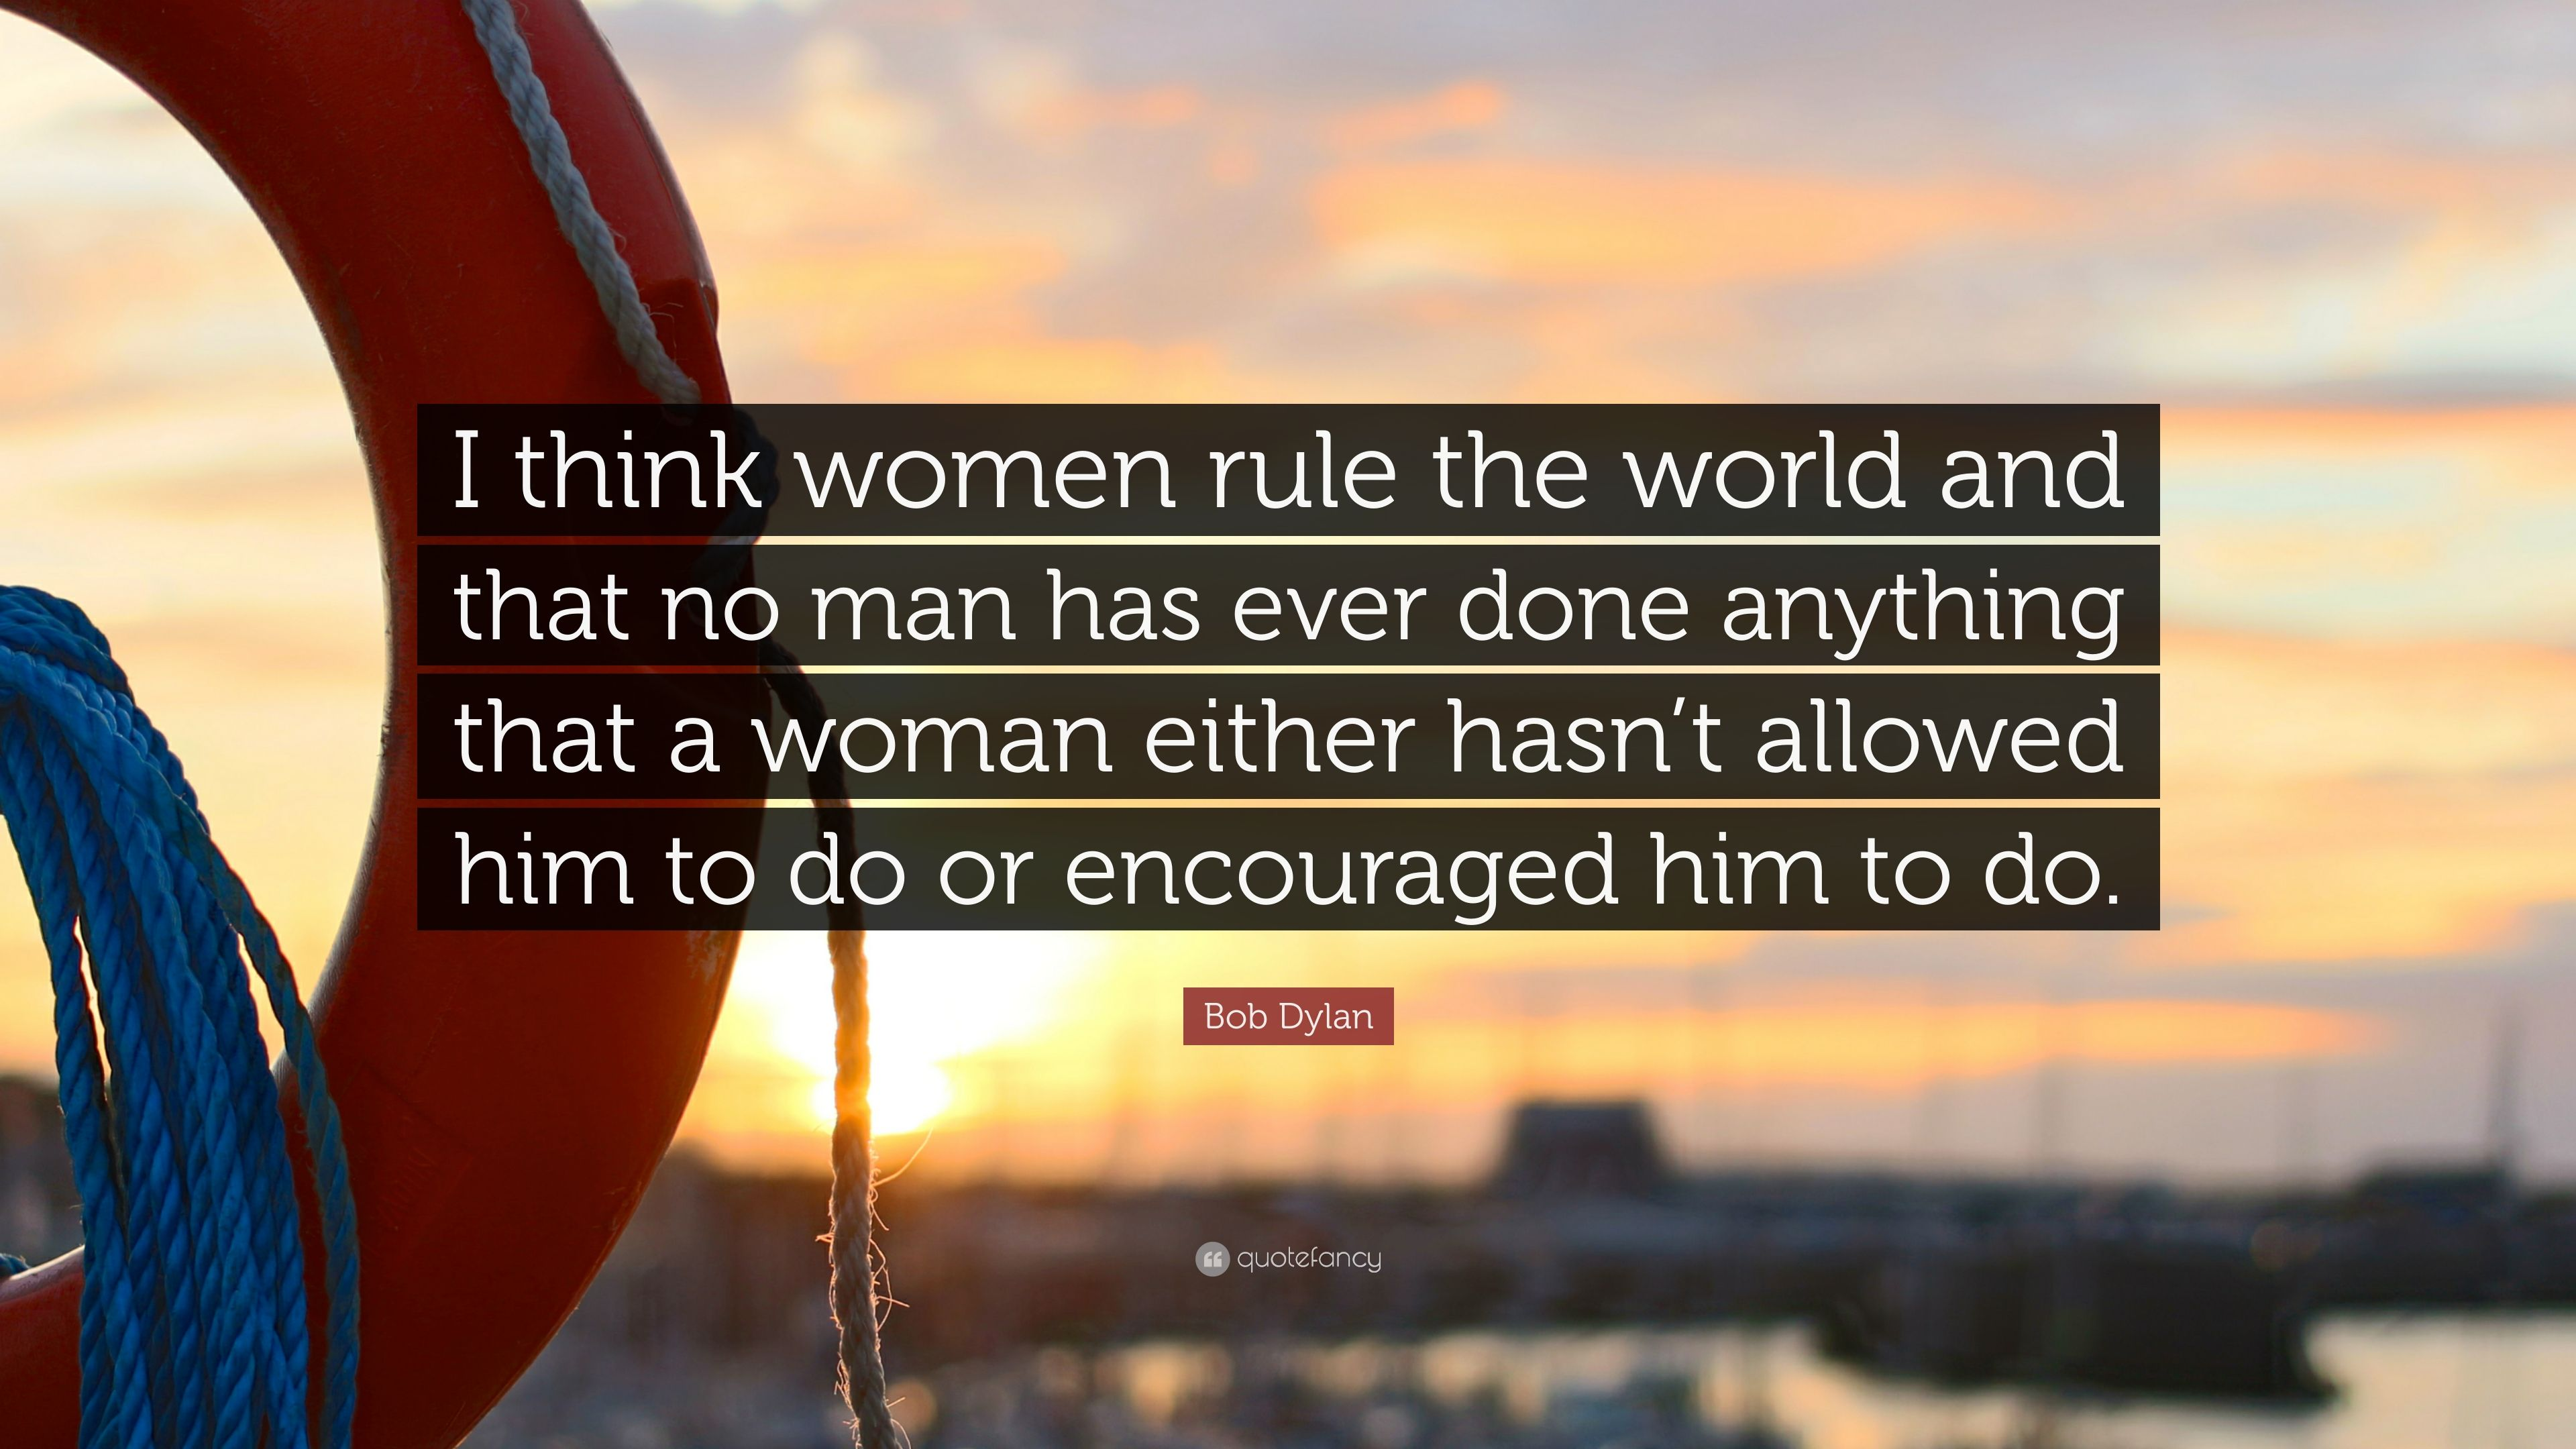 Bob Dylan Quotes Wallpapers Bob Dylan Quote I Think Women Rule The World And That No